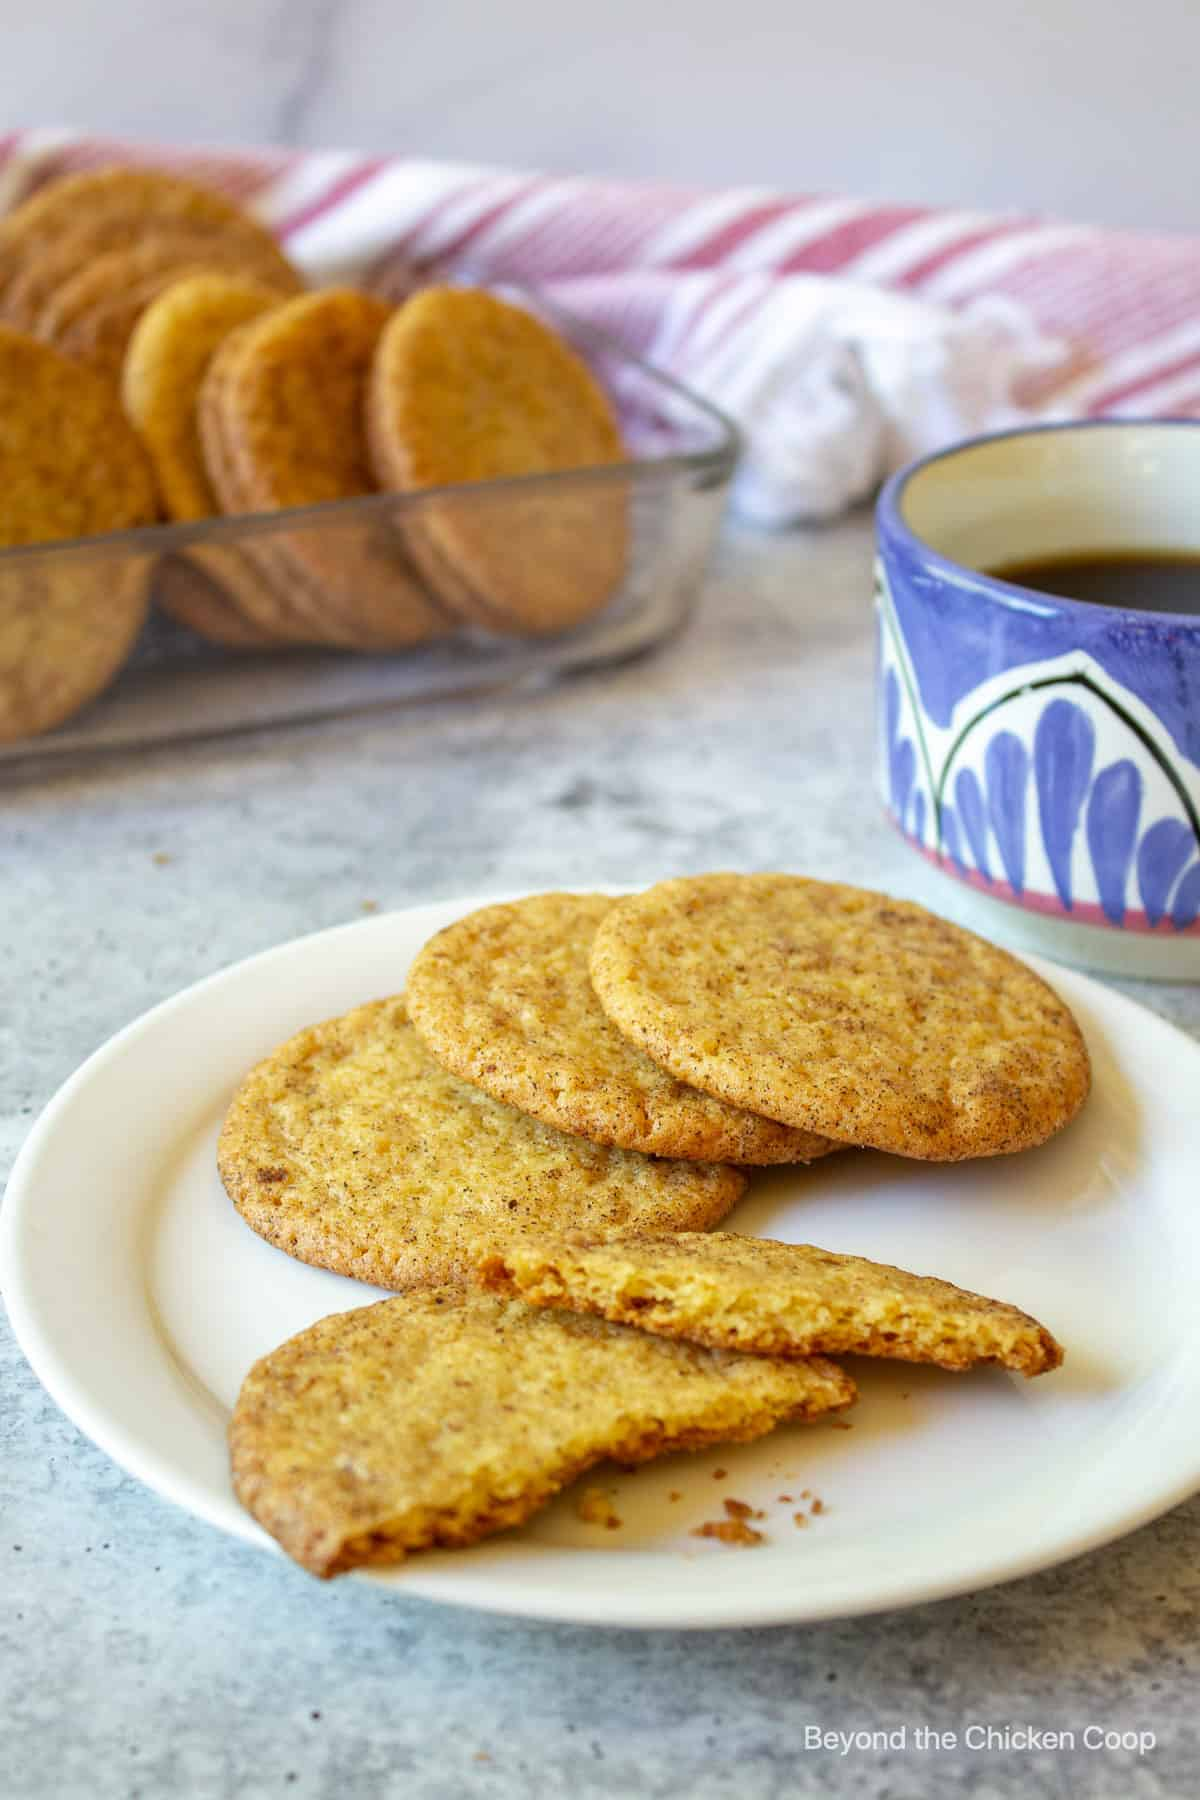 Cookies on a white plate with a cup of coffee in the background.